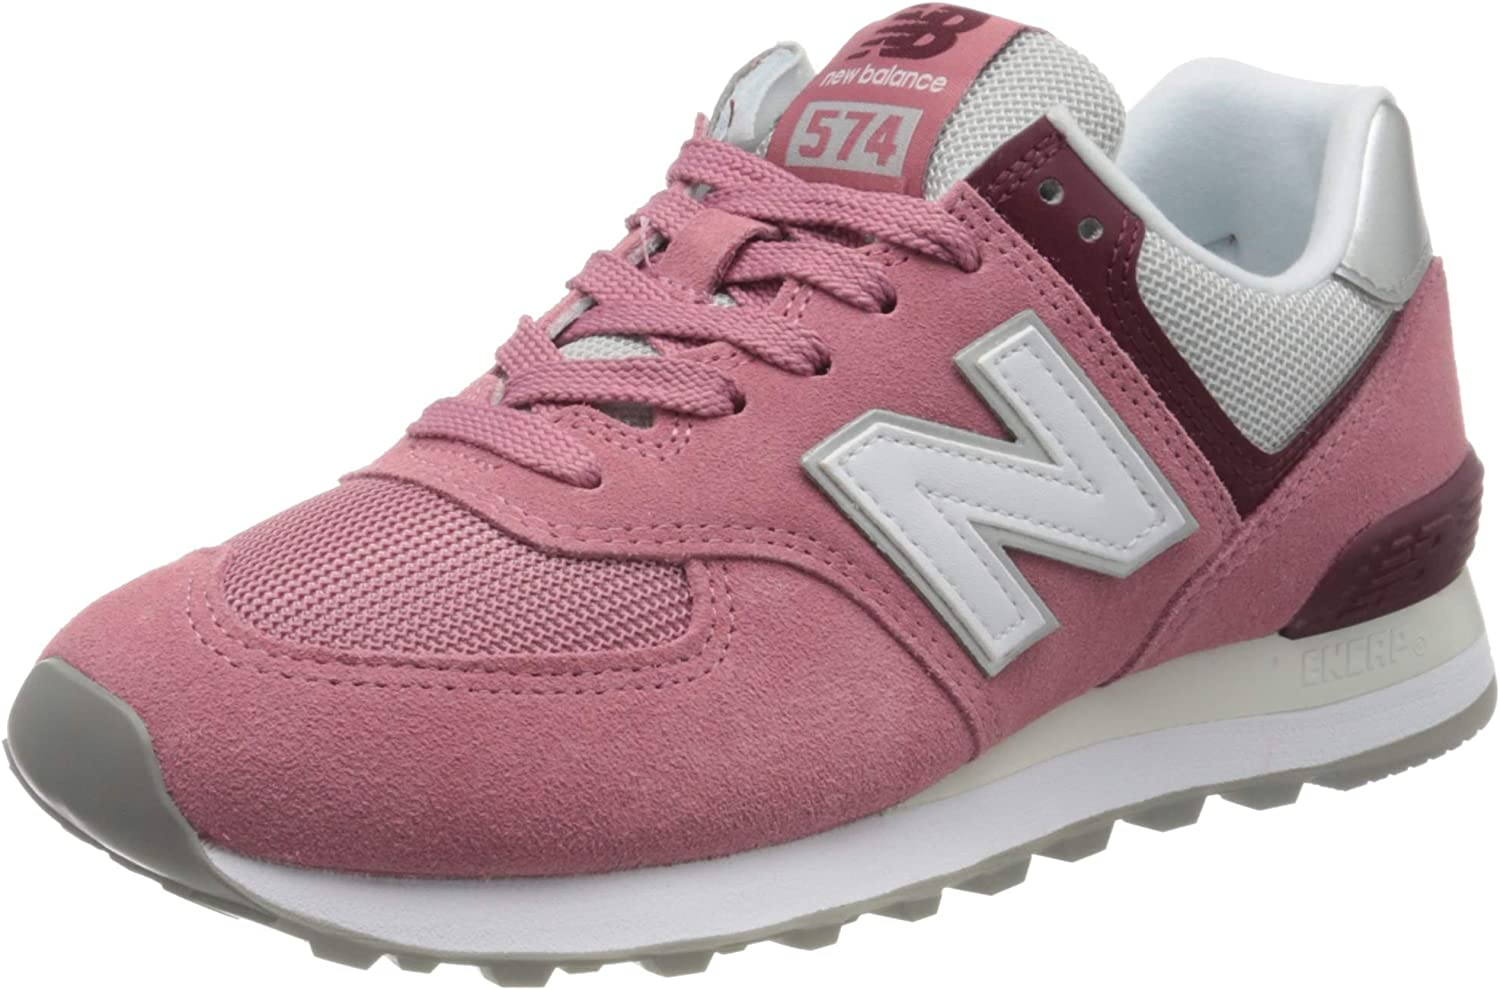 Retro Sneakers, Vintage Tennis Shoes New Balance Womens 574v2 Sneaker  AT vintagedancer.com